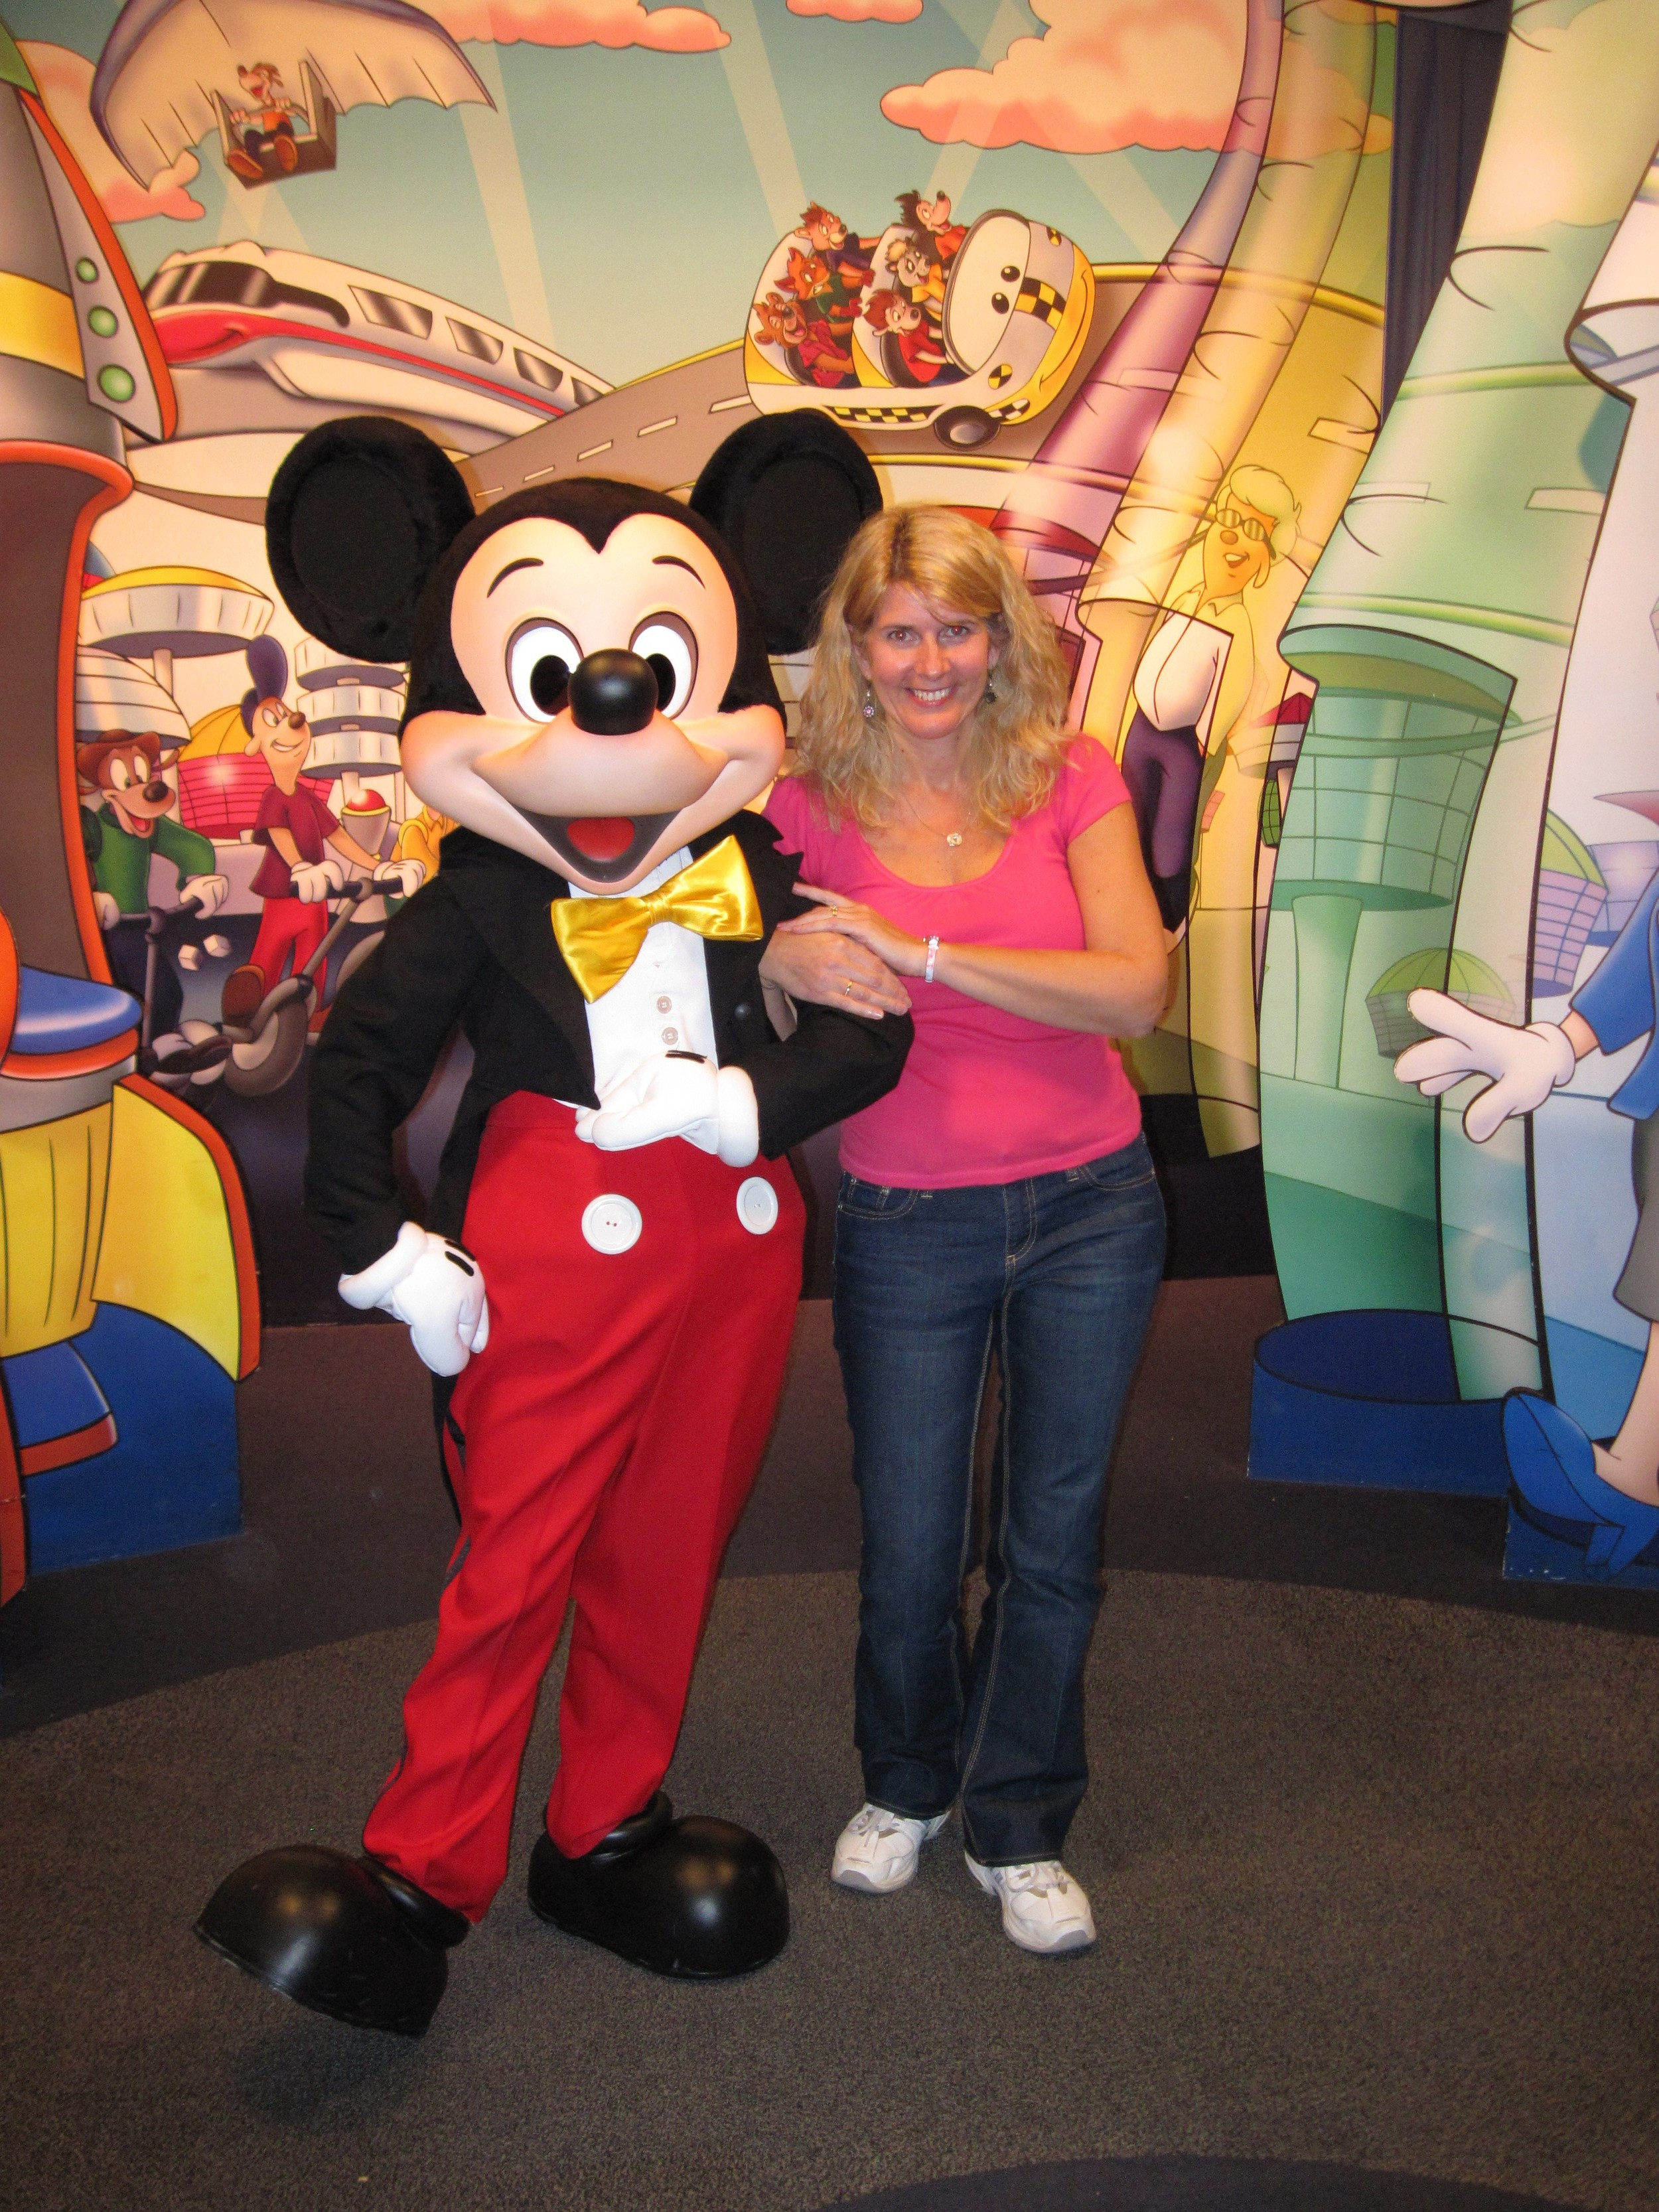 Yes, I met the mouse himself at Epcot.